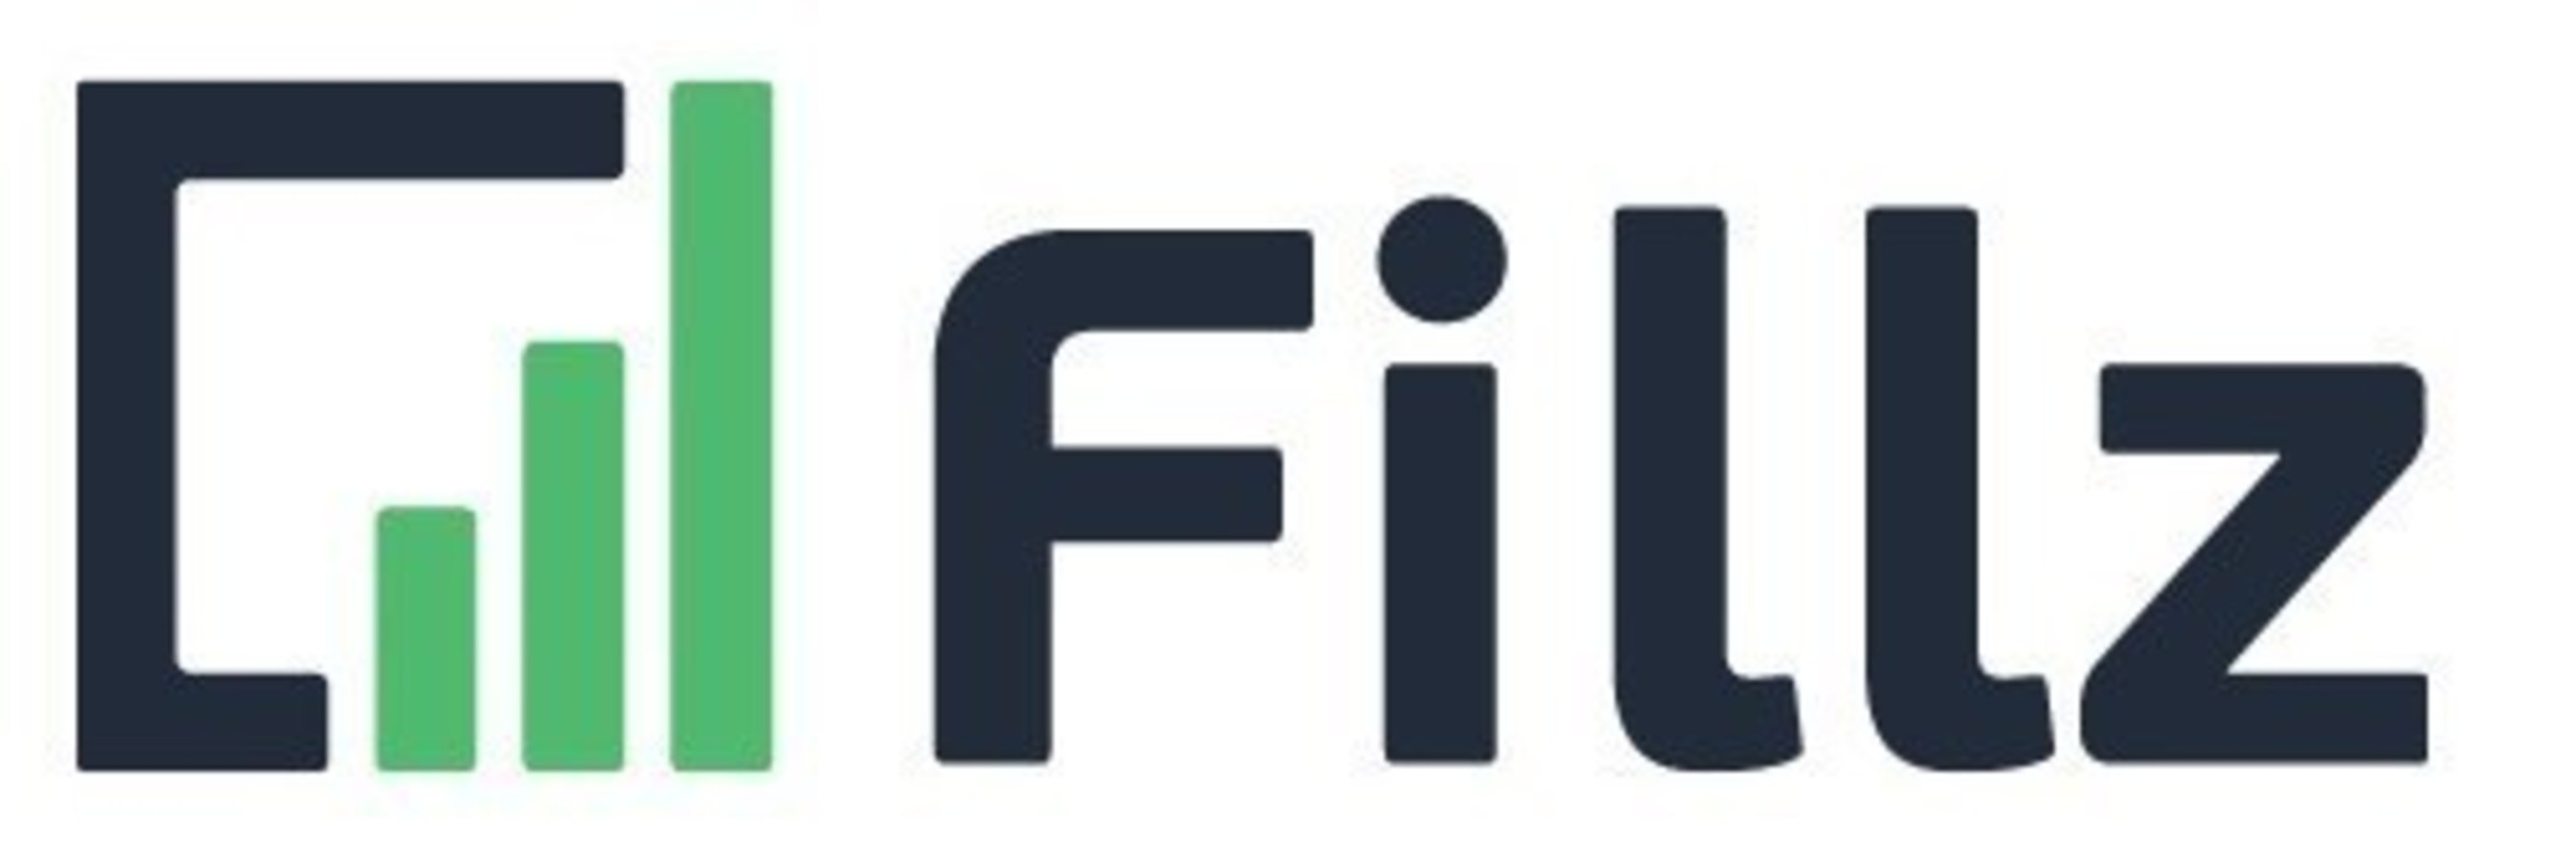 Marketplace Selling on the Move: Fillz Launches New Mobile Friendly User Interface for Online Sellers